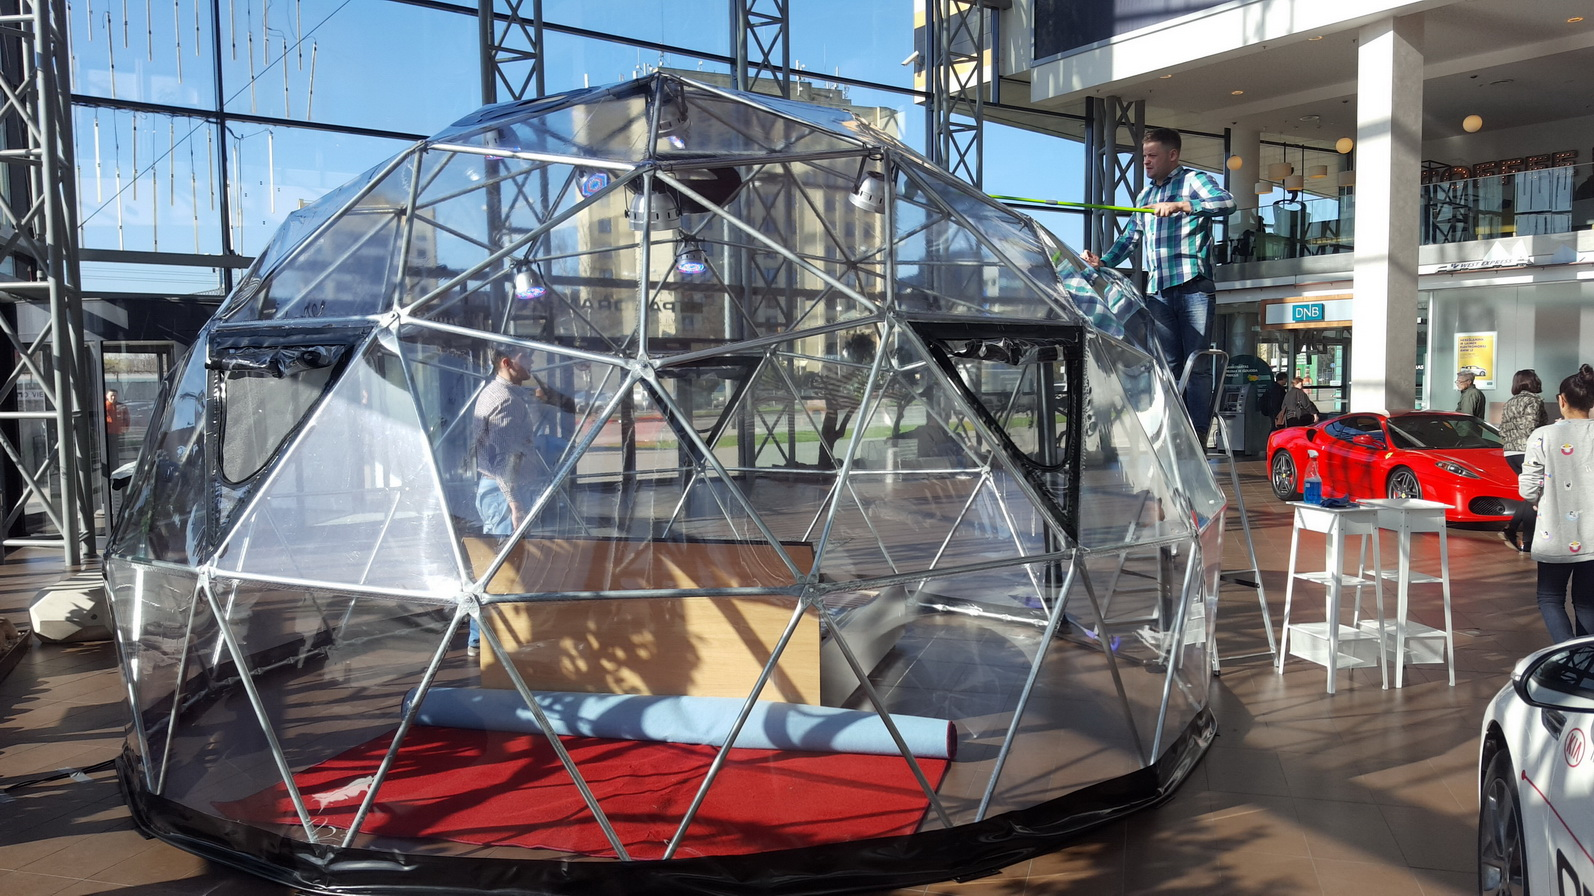 DORMEO Transparent Dome Ø6m @ ExtremeDelight